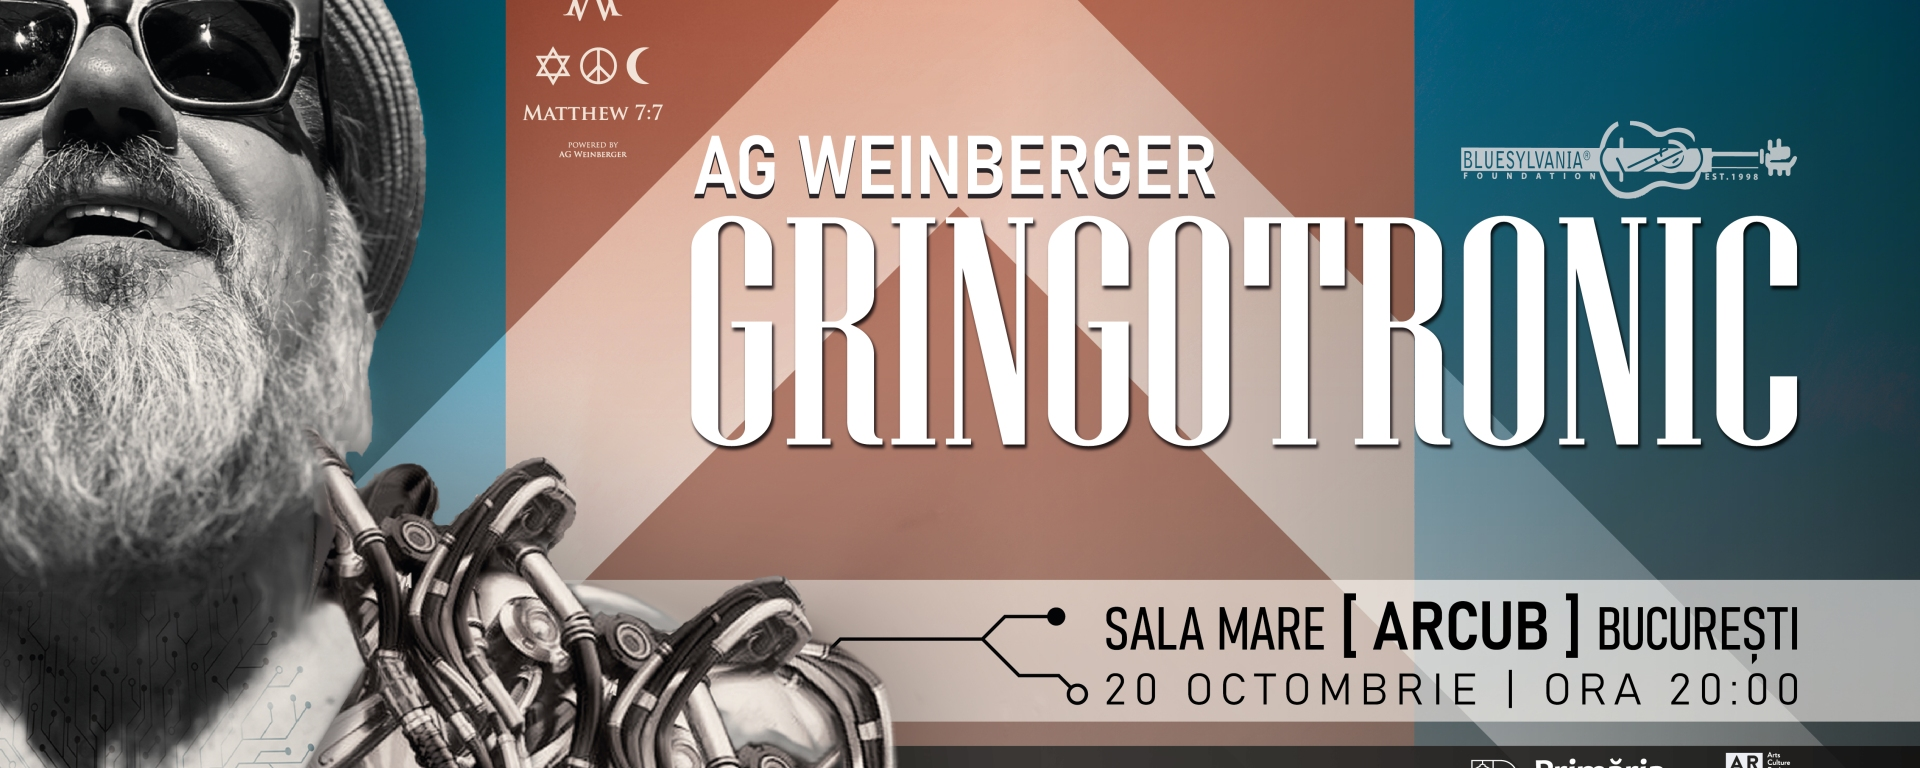 GringoTronic by AG Weinberger, Bucuresti, 20 Octombrie